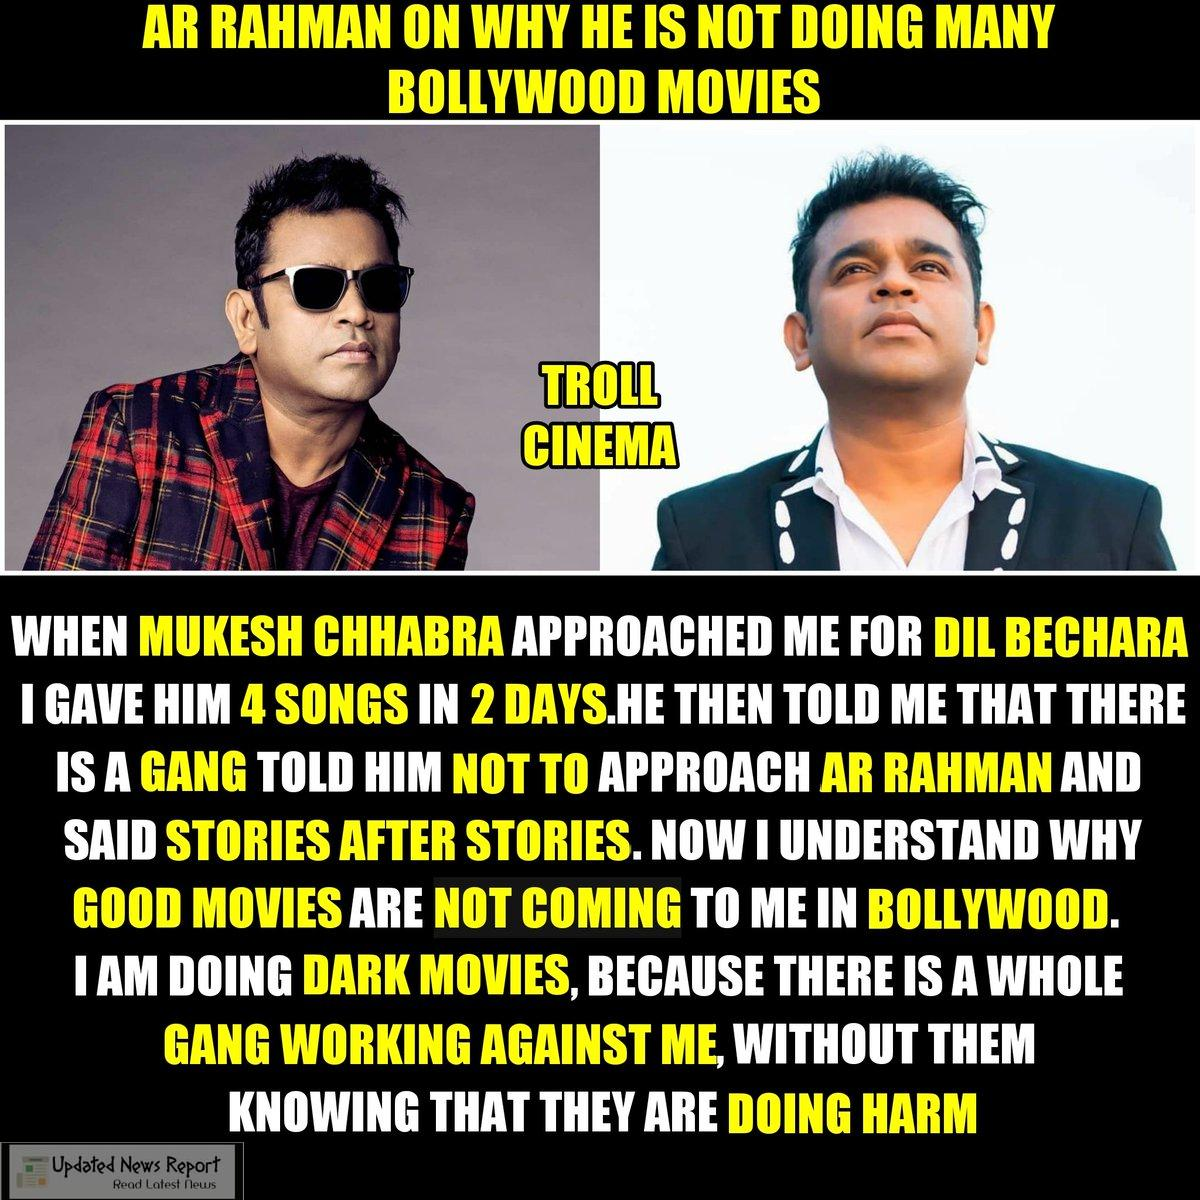 AR Rahman Opens up that how a B-town gang is spreading 'false rumors' about him, and stopping him from getting work from Bollywood Fil